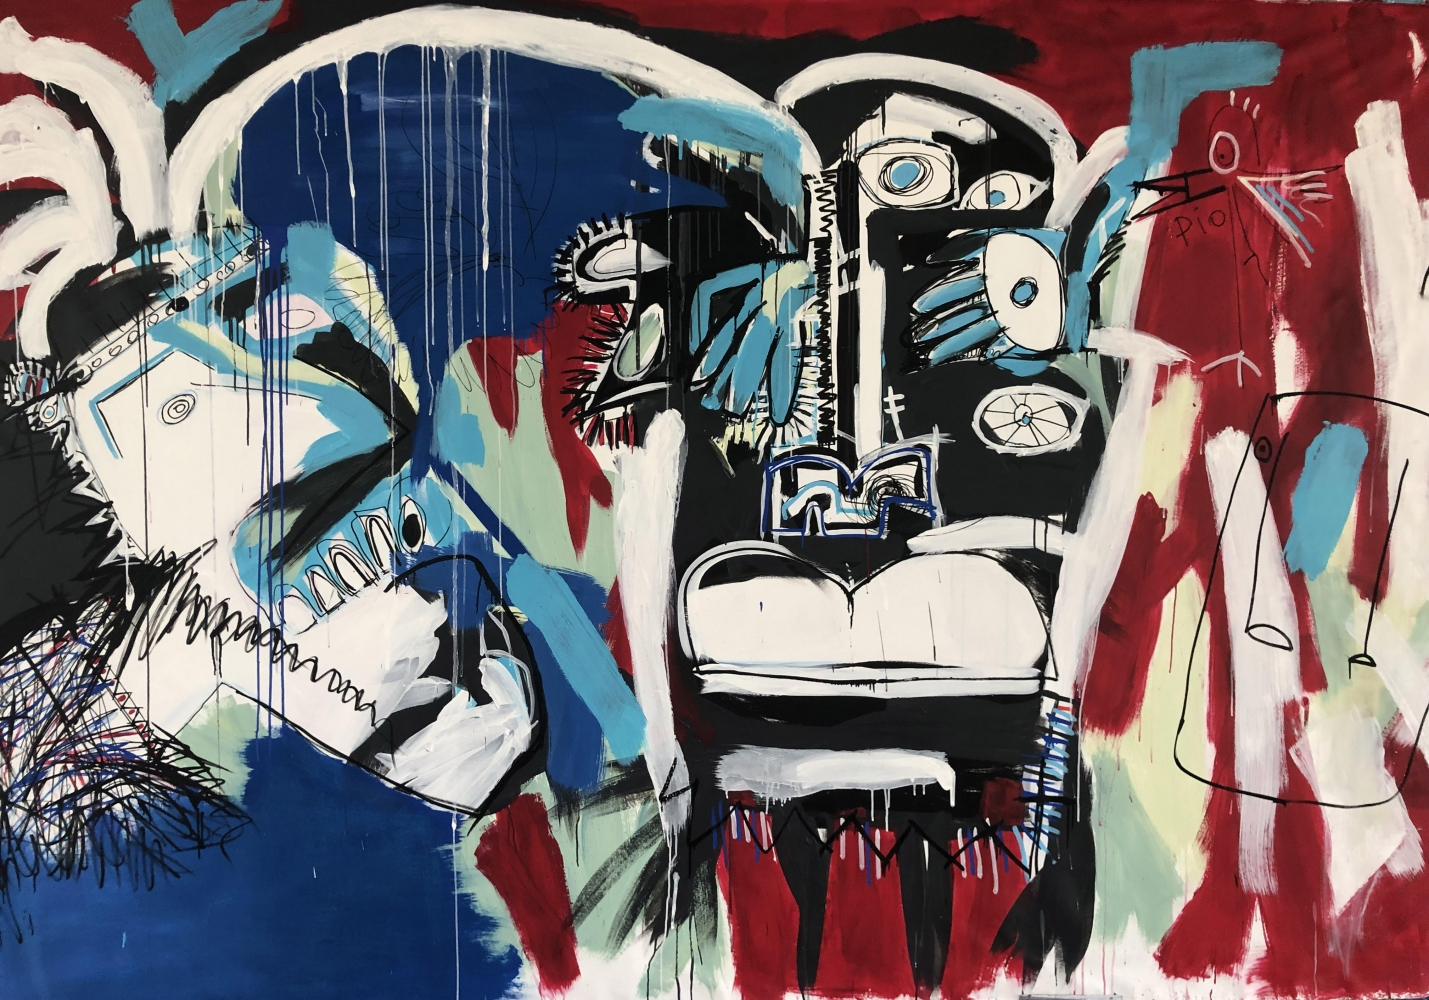 Fernanda Lavera, Final Cut, 2019, 79 x 126 inches, Acrylic, Marker and Oil on canvas, Graffiti and Street Art for Sale at Manolis Projects Art Gallery